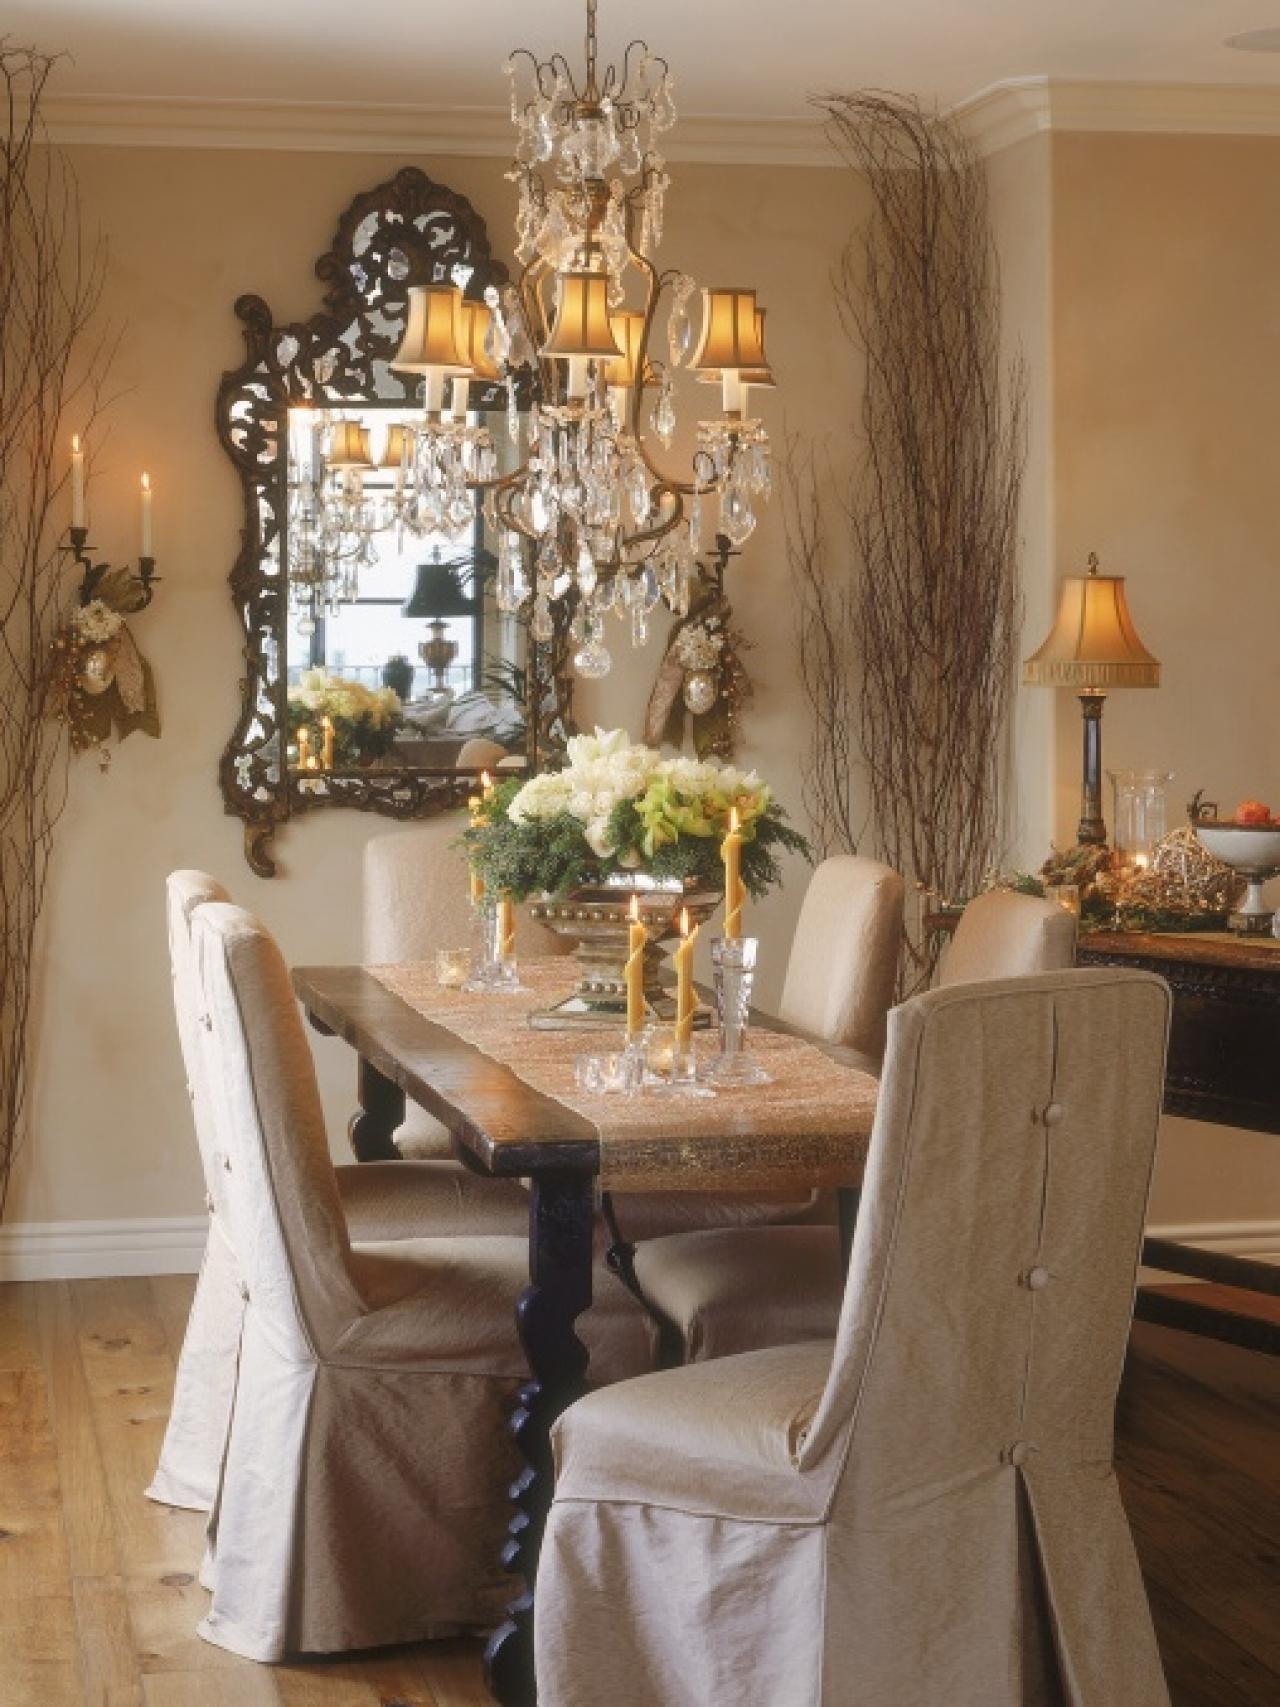 41 Lovely French Country Dining Space Decor That Will Give You The Much Needed Motivation Beautiful Decoratorist